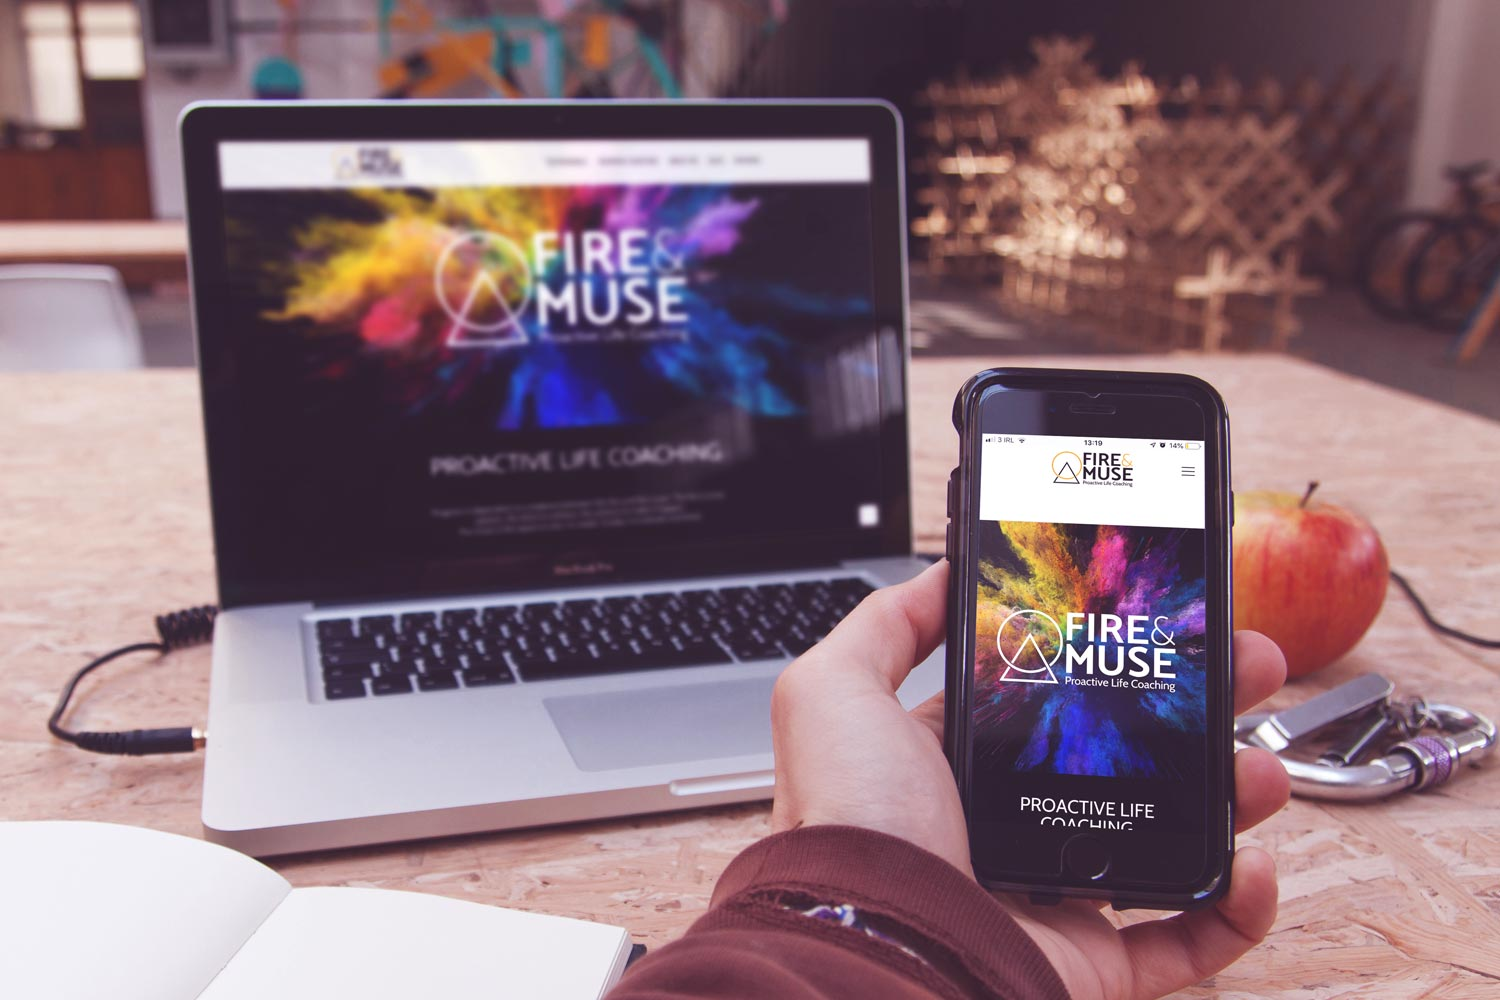 fire-muse-phone2